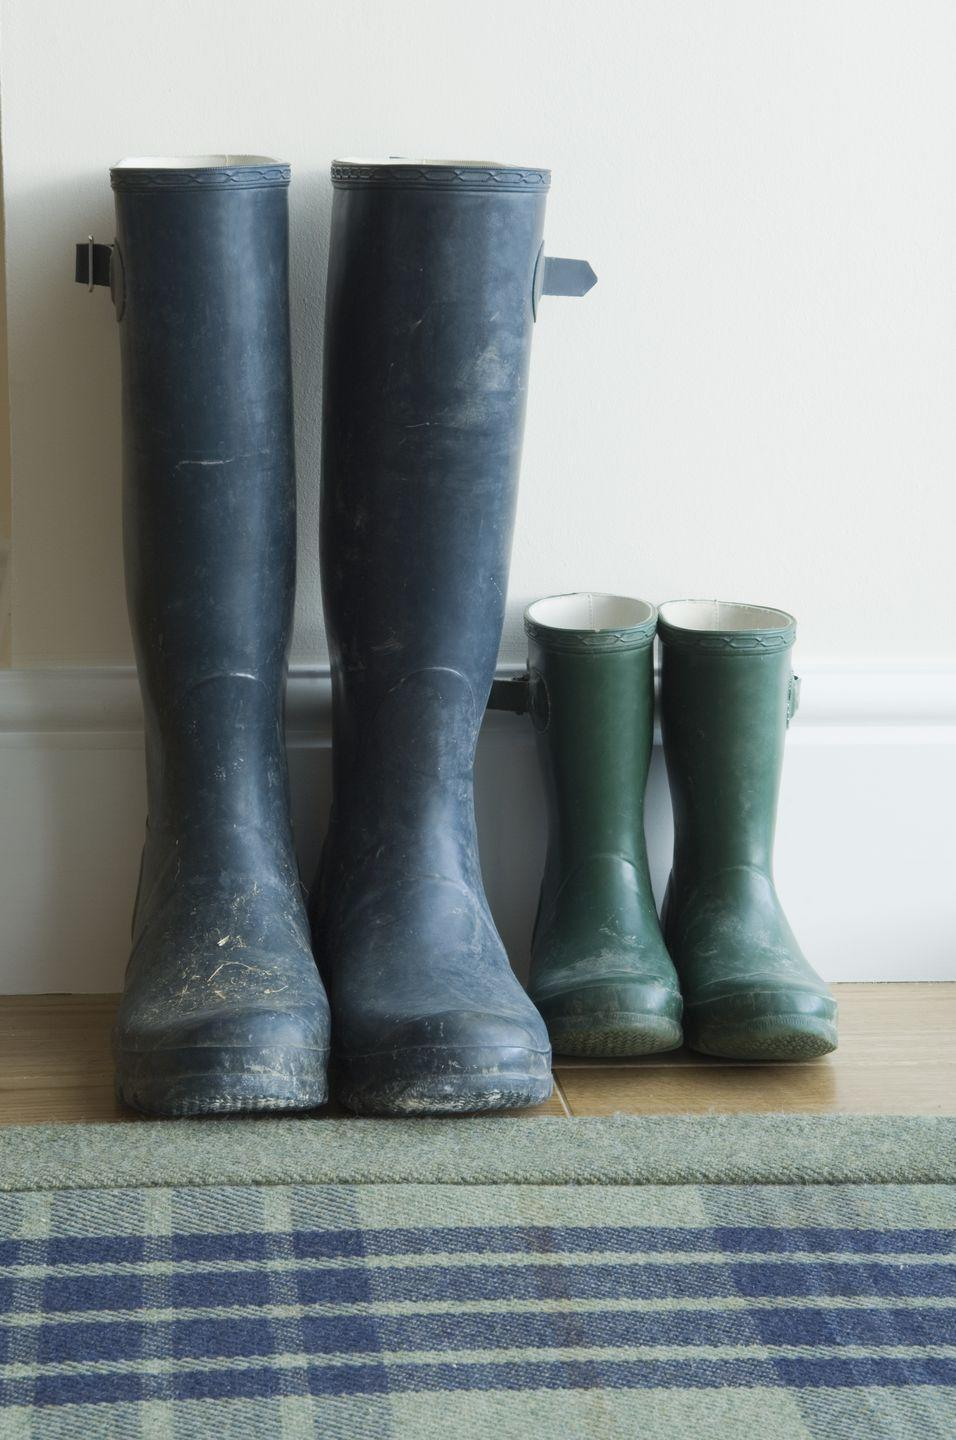 """<p>Rain boots at a thrift store may seem like a bargain, but waterproof apparel can wear over the years and <a href=""""https://www.insider.com/things-you-should-not-buy-at-a-thrift-store-2017-8#rain-gear-7"""" rel=""""nofollow noopener"""" target=""""_blank"""" data-ylk=""""slk:become less effective"""" class=""""link rapid-noclick-resp"""">become less effective</a>. Trust us, no one likes soggy feet. Best to buy a new pair. </p>"""